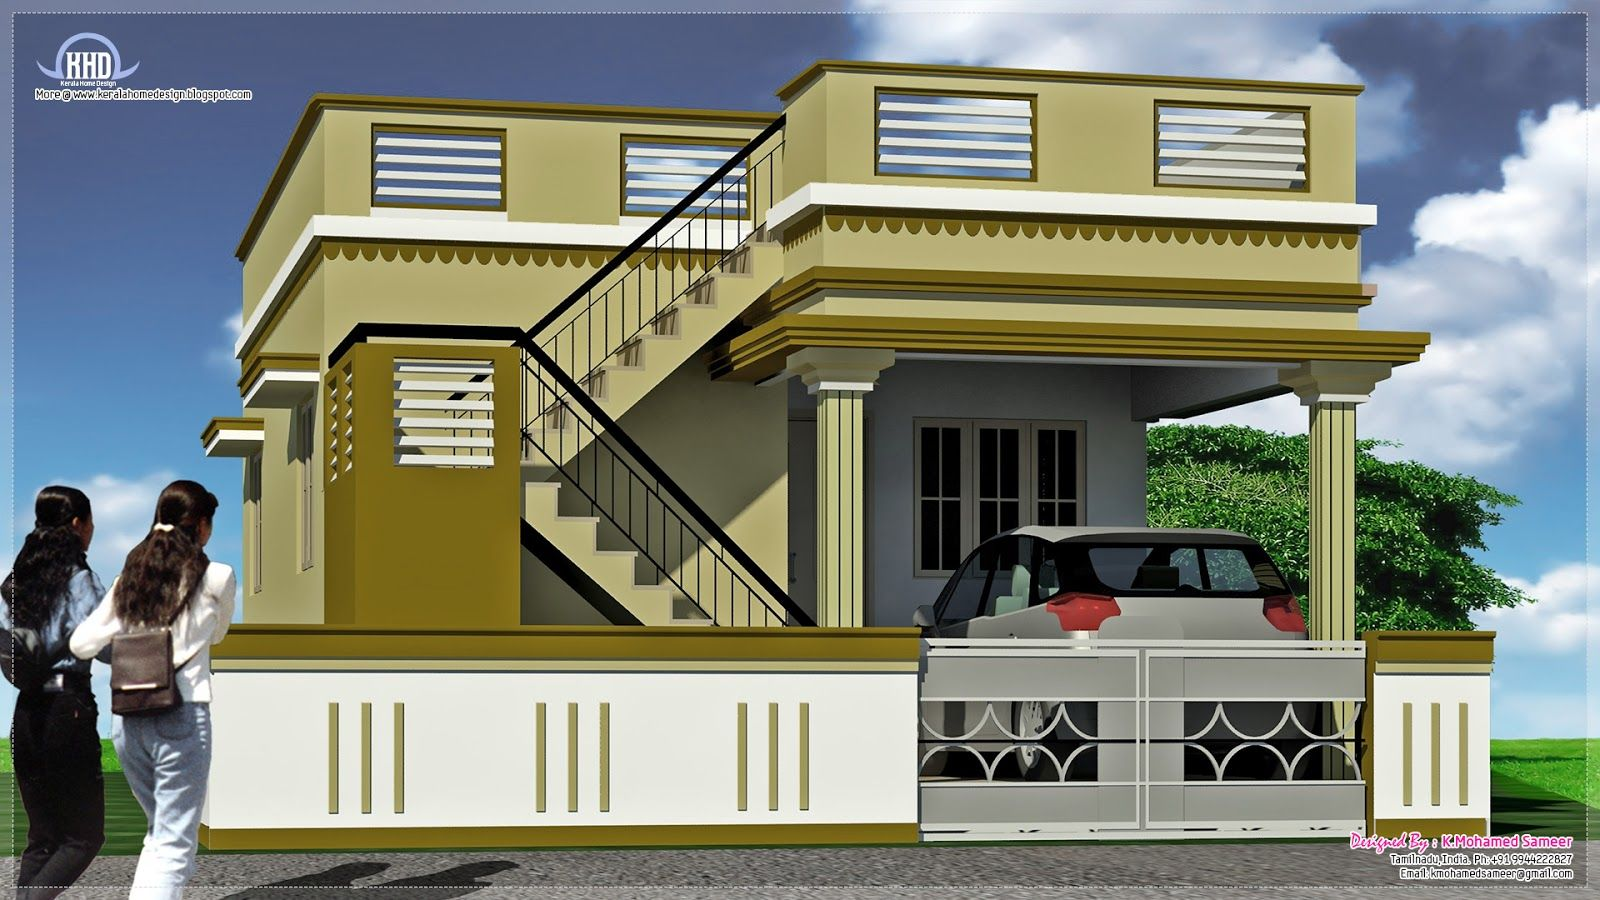 Awesome South Indian House Exterior Designs House Design Plans Bedroom American